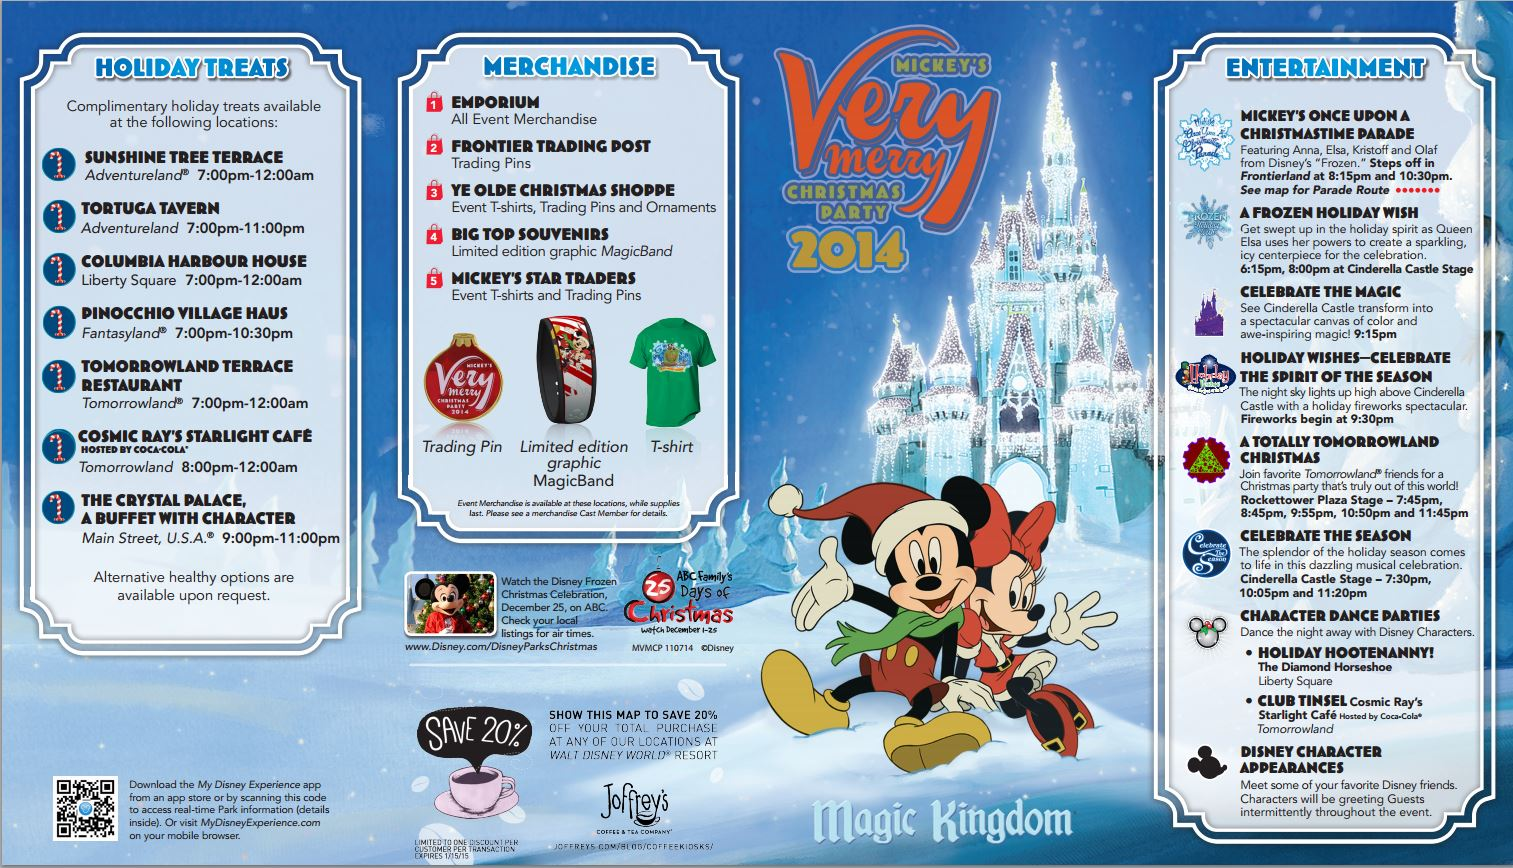 mickeys very merry christmas party 2014 map information and ticket pricing click the images to enlarge this information is accurate as of november 5 - Mickeys Merry Christmas Tickets